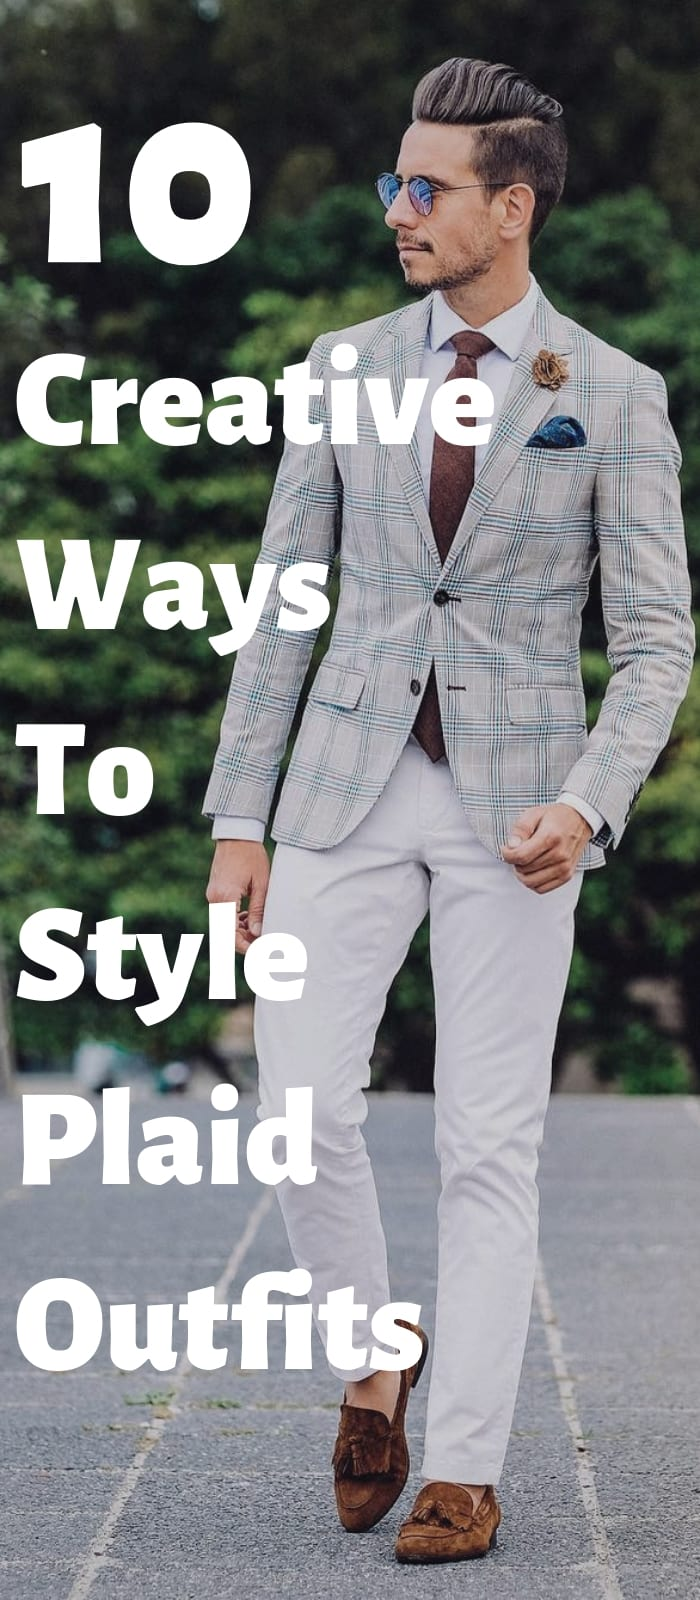 10 Creative Ways To Style Plaid Outfits !